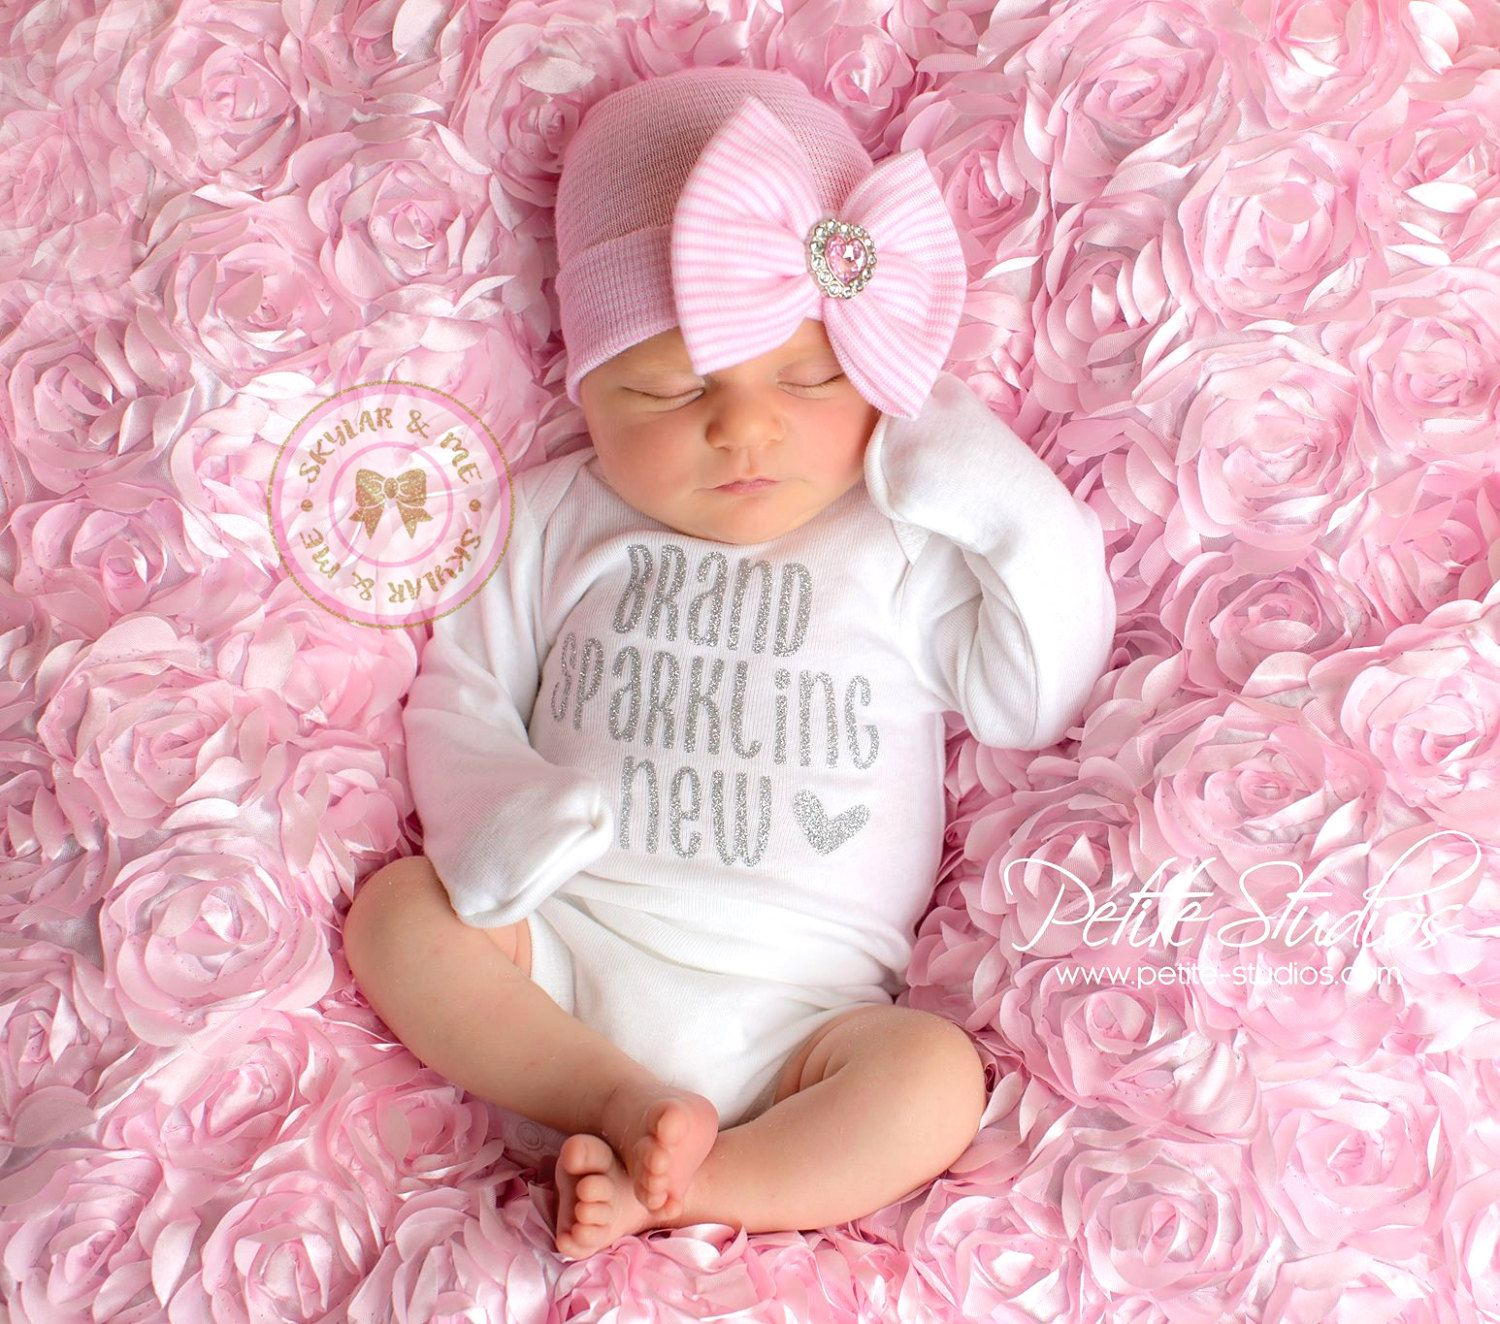 34390044c63a BABY GIRL coming home outfit, baby girl, newborn girl, going home outfit, coming  home baby girl, baby girl headband, newborn headband girl *´¯`•.¸.•*´¯`•.¸.